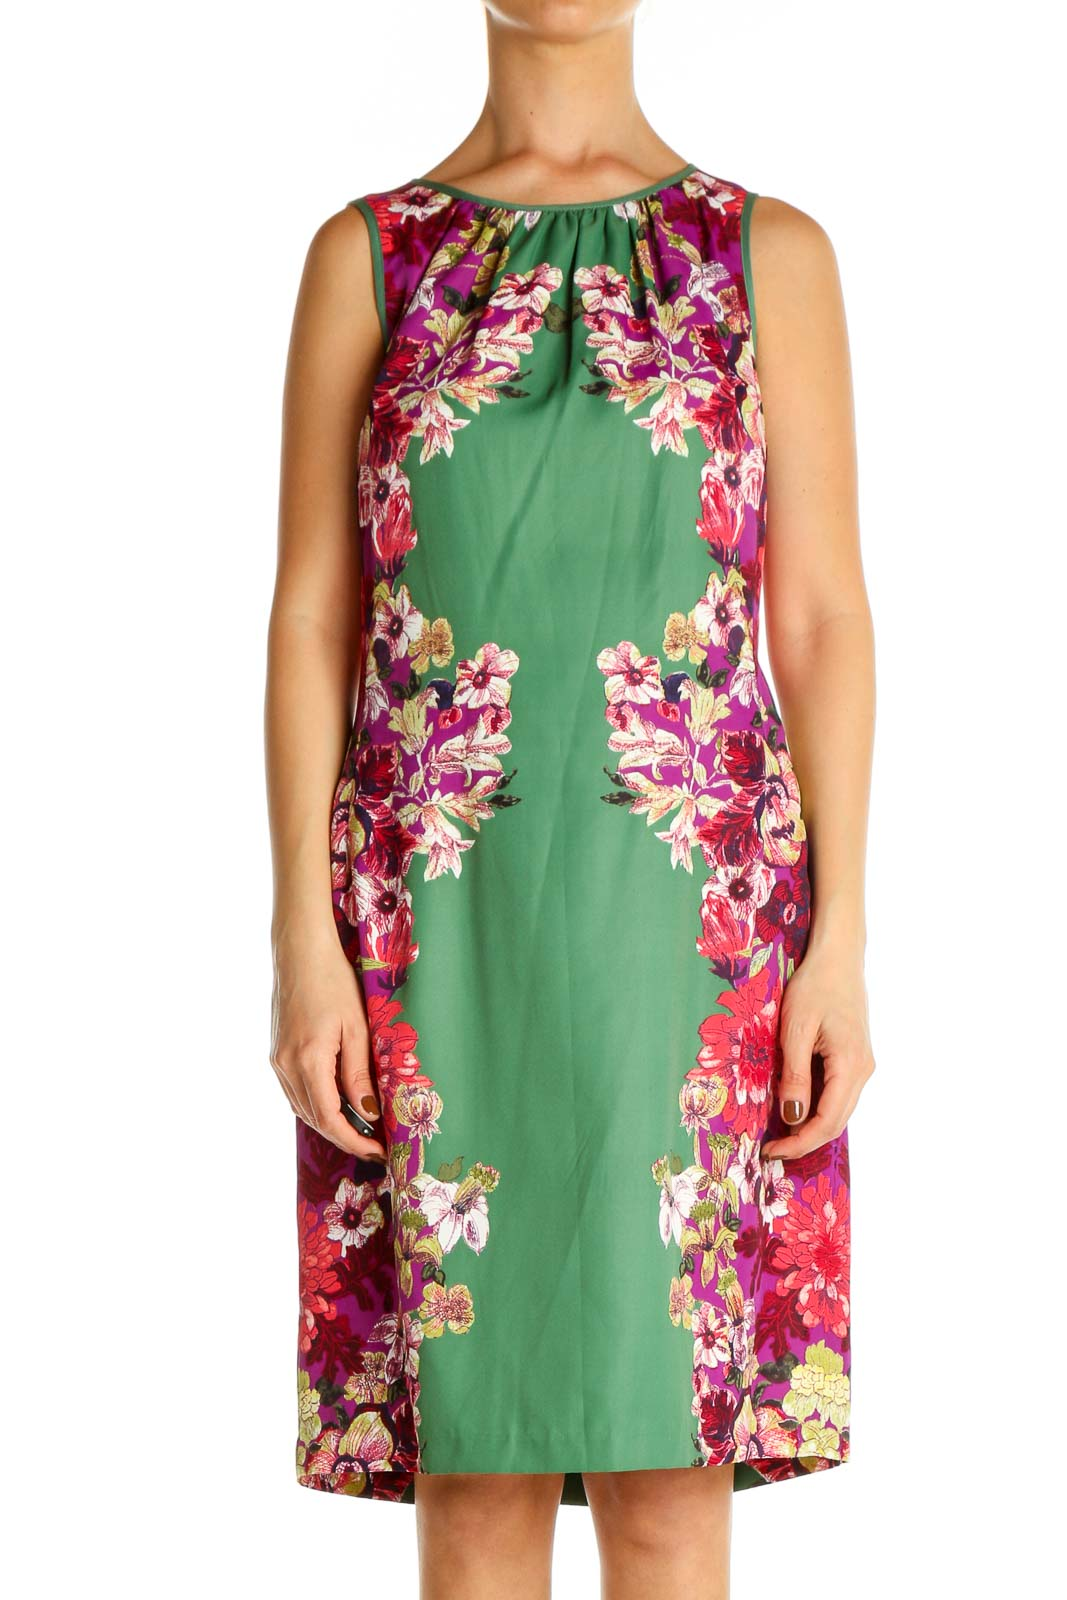 Green Floral Print Holiday Shift Dress Front